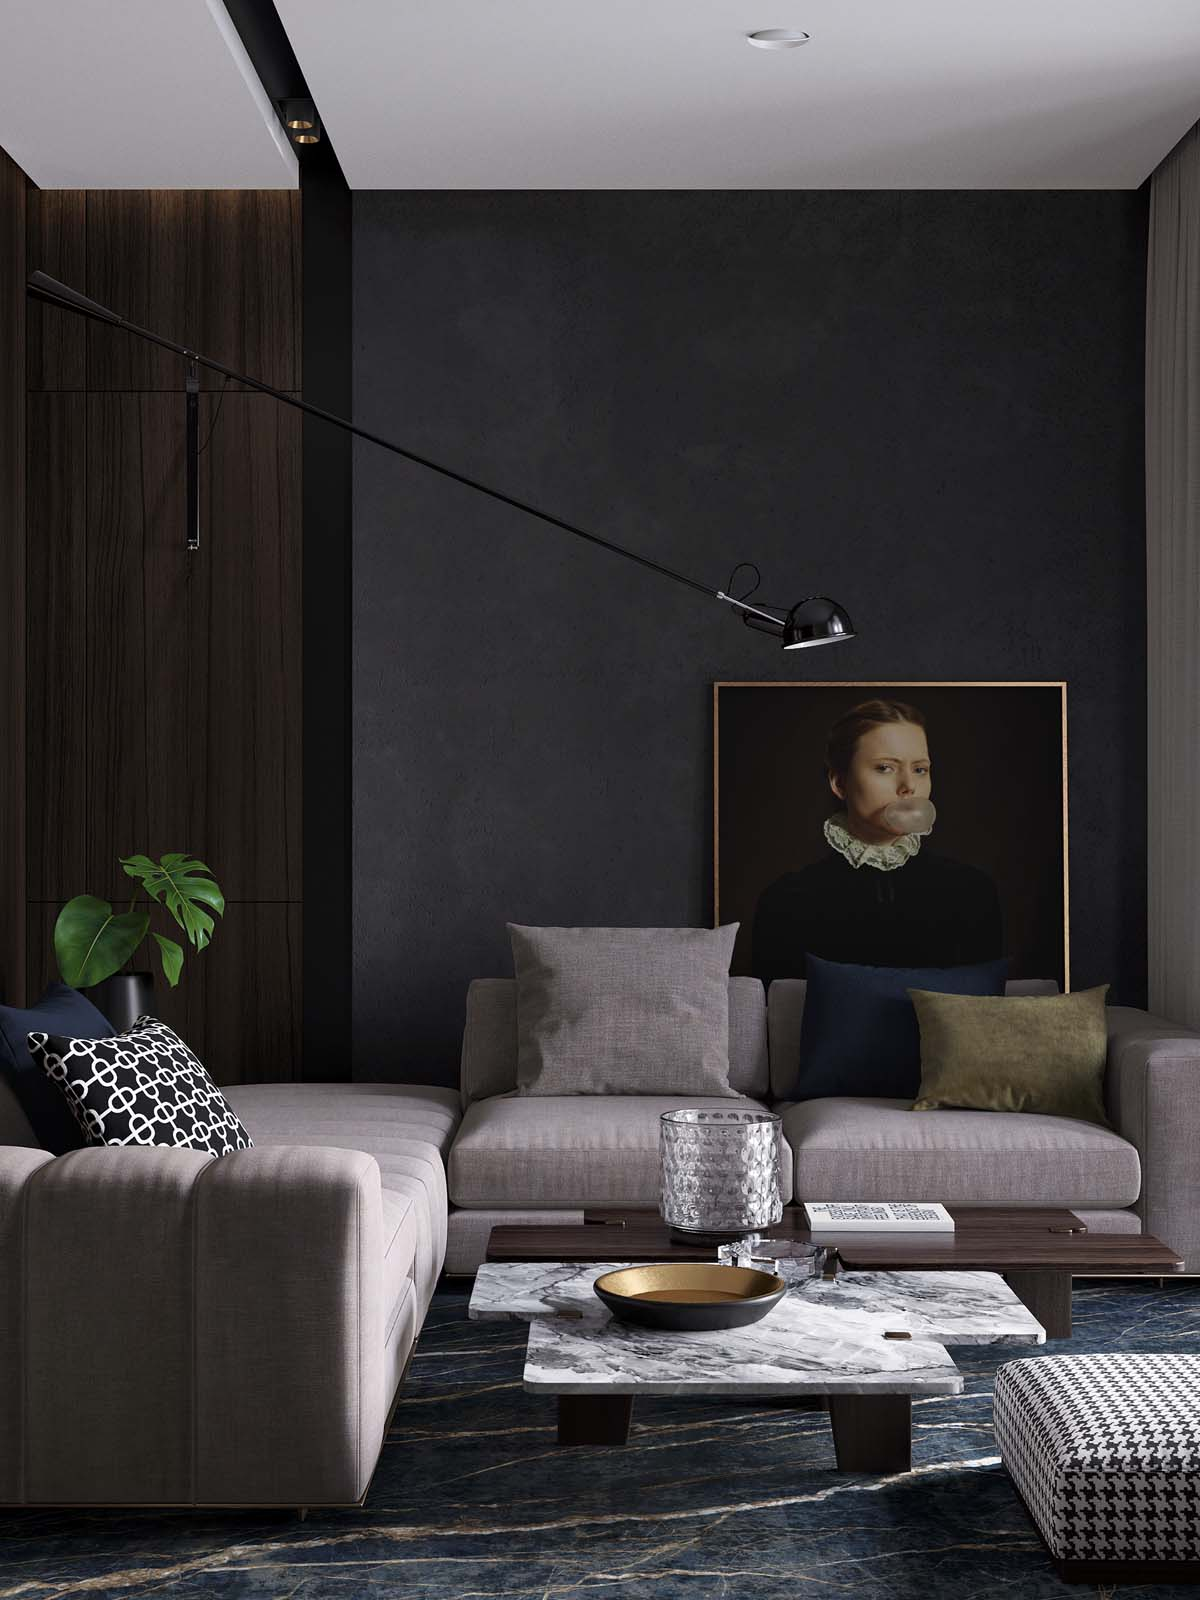 Using Dark Color Schemes For Small Homes: 3 Examples With Floor Plans images 1